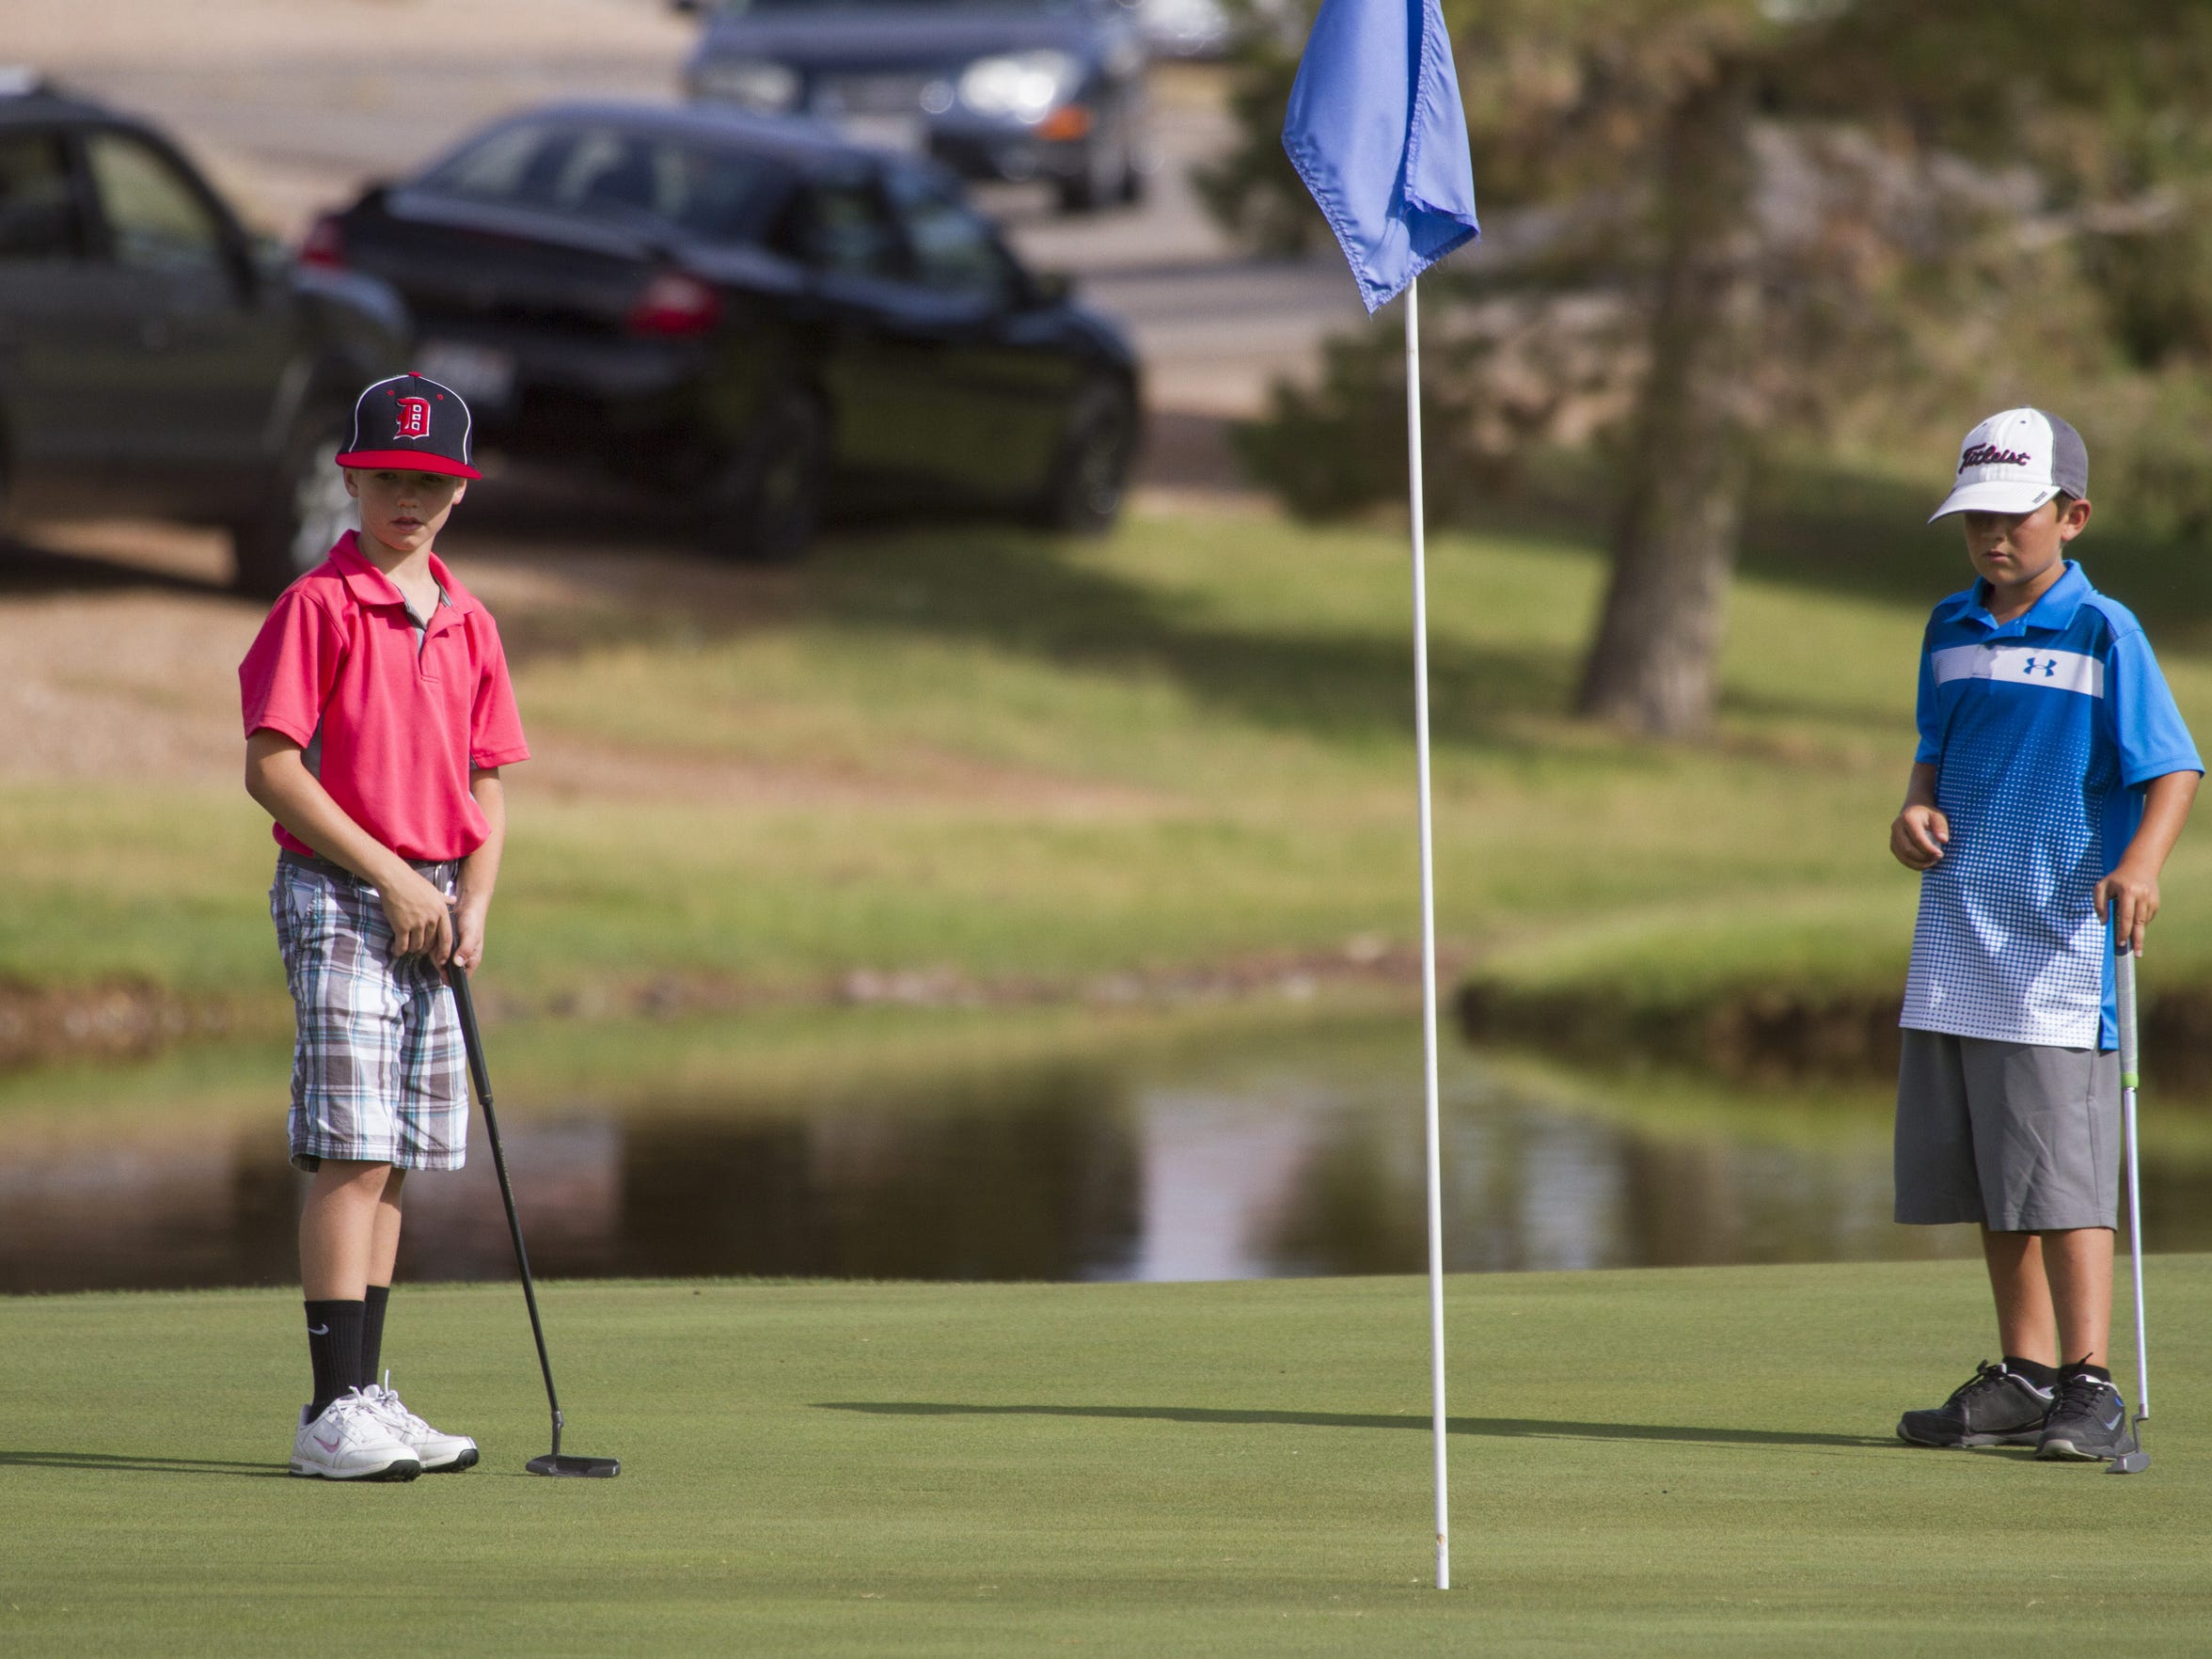 Members of the Junior Association of Golfers compete